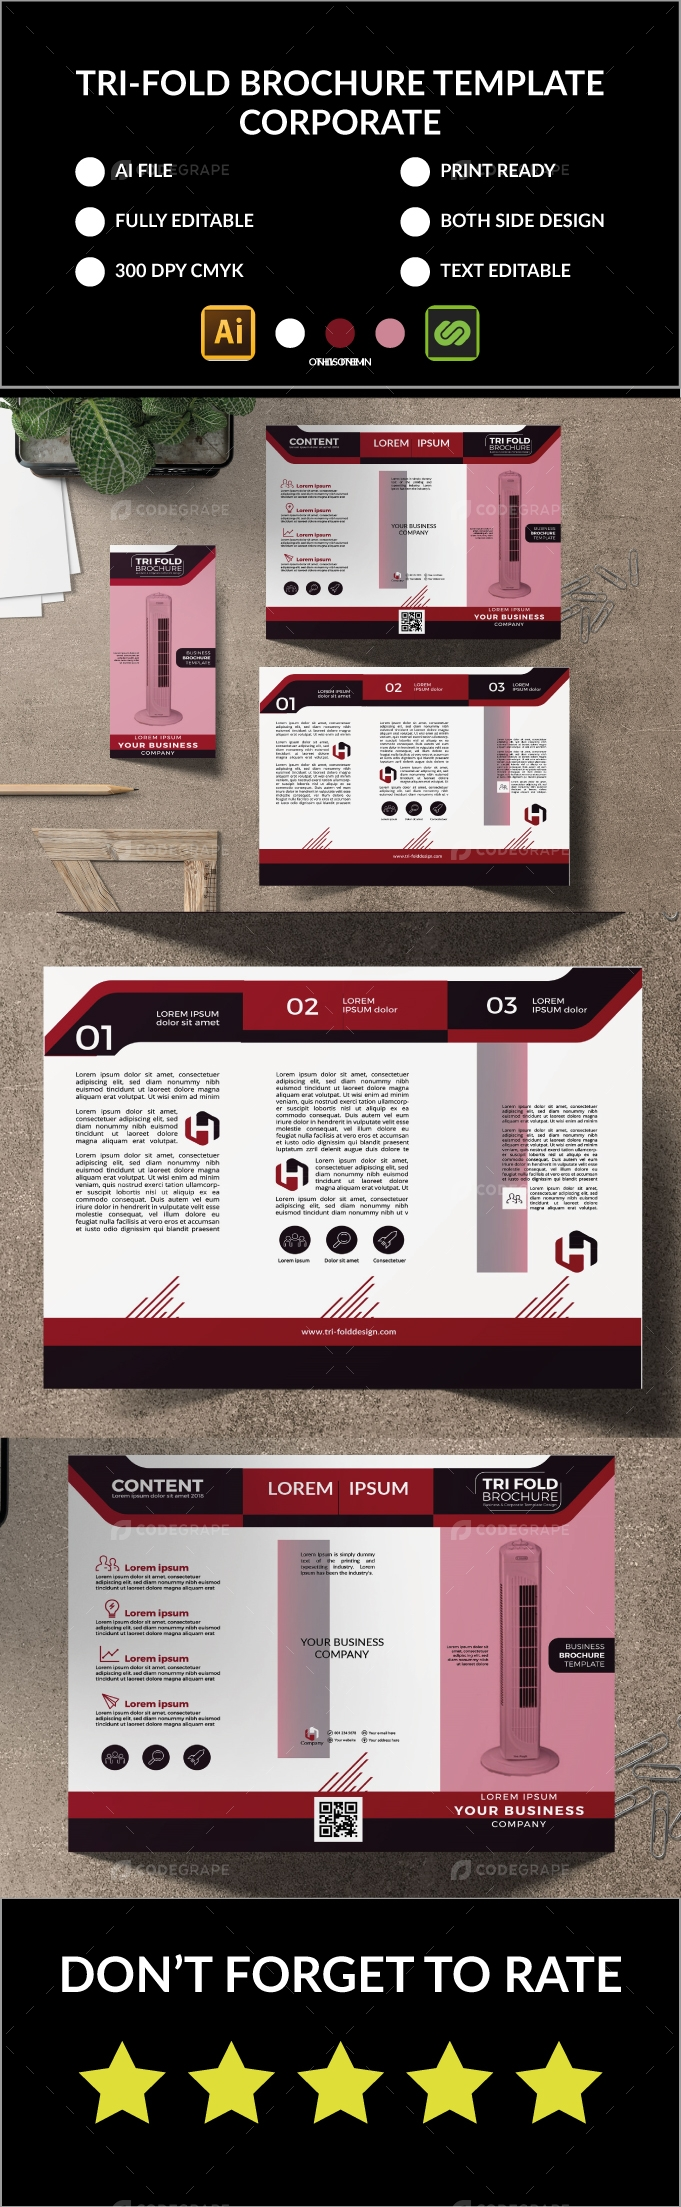 Real-State Tri-Fold Brochure